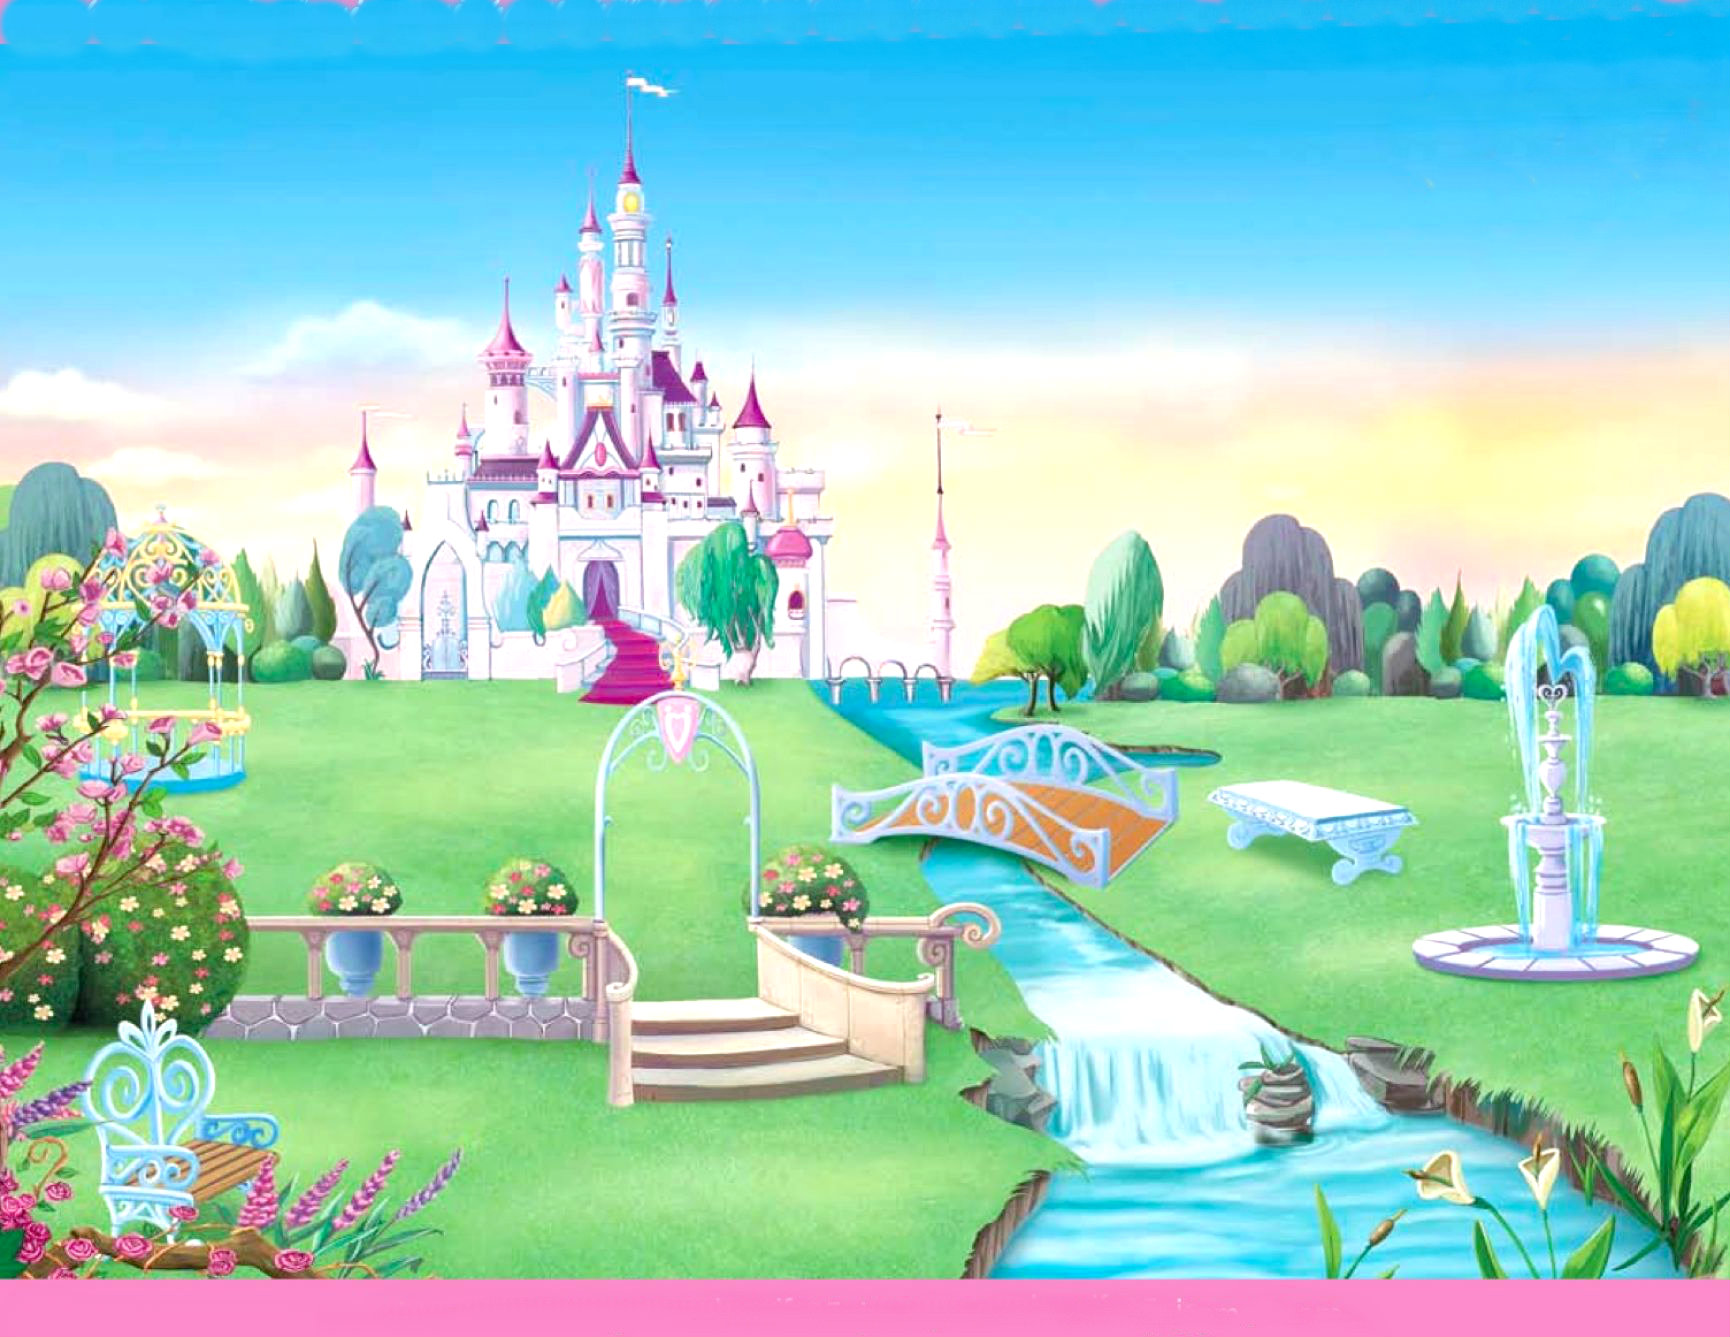 Disney com princess castle backgrounds disney princesses html code - Jpg 1730x1337 Disney Princess Castle Backgrounds